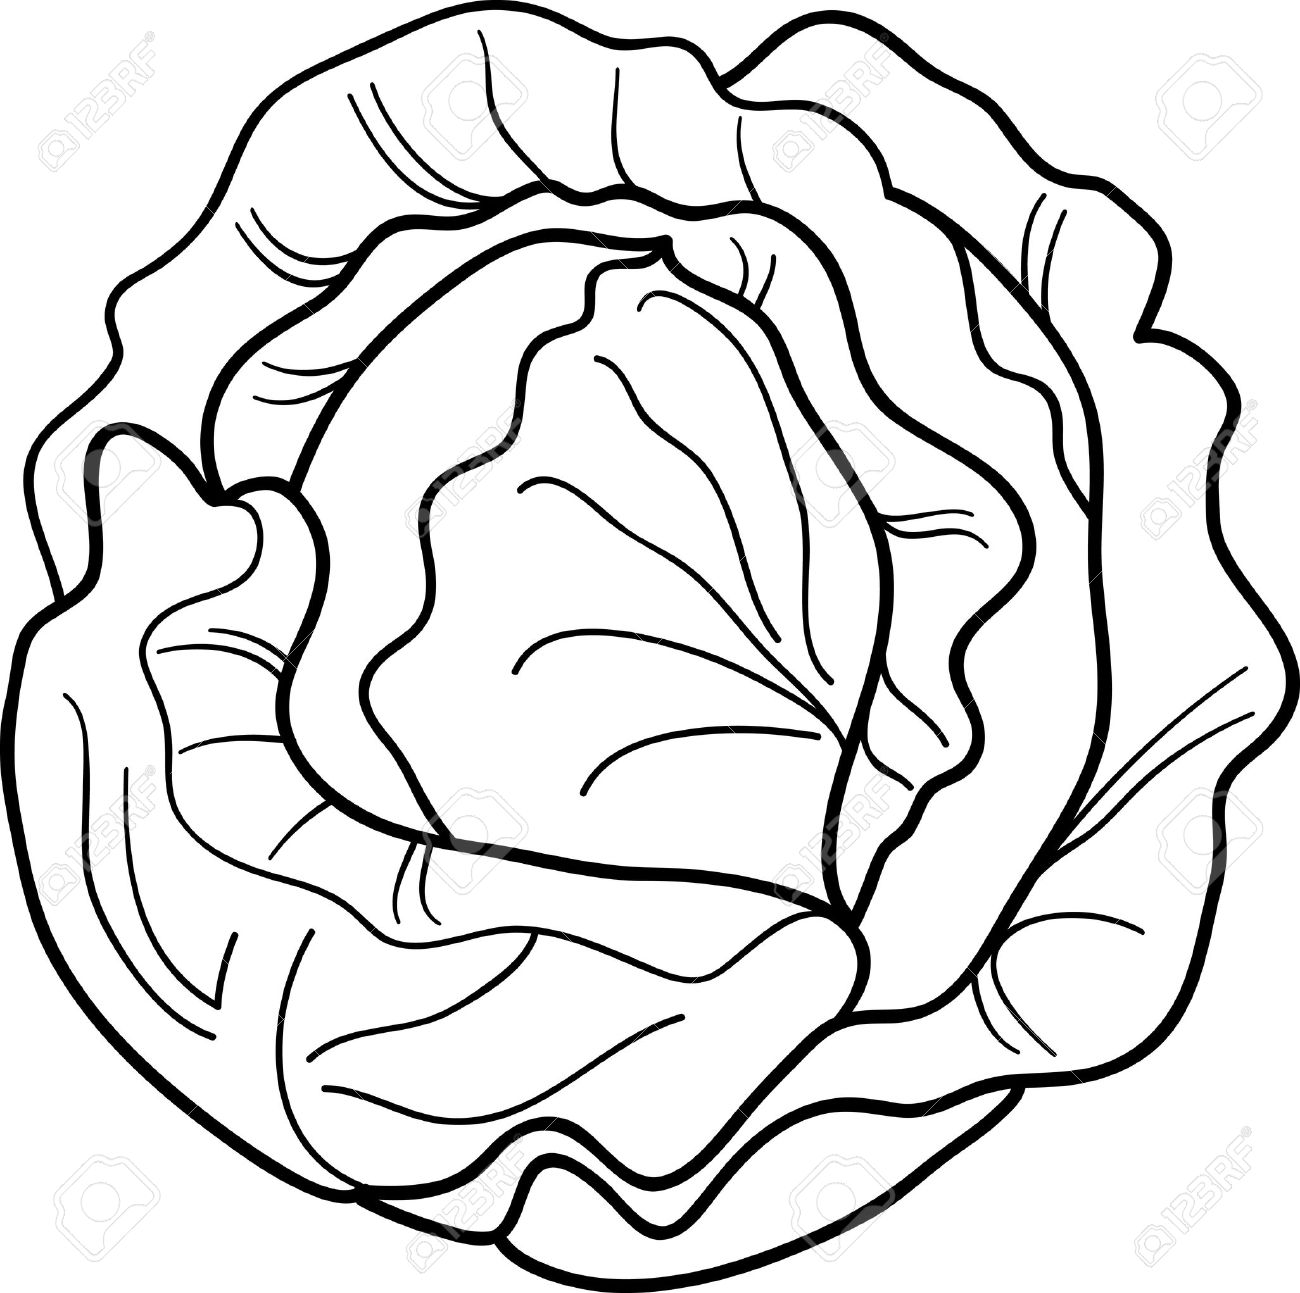 Kohl clipground black and. Cabbage clipart illustration